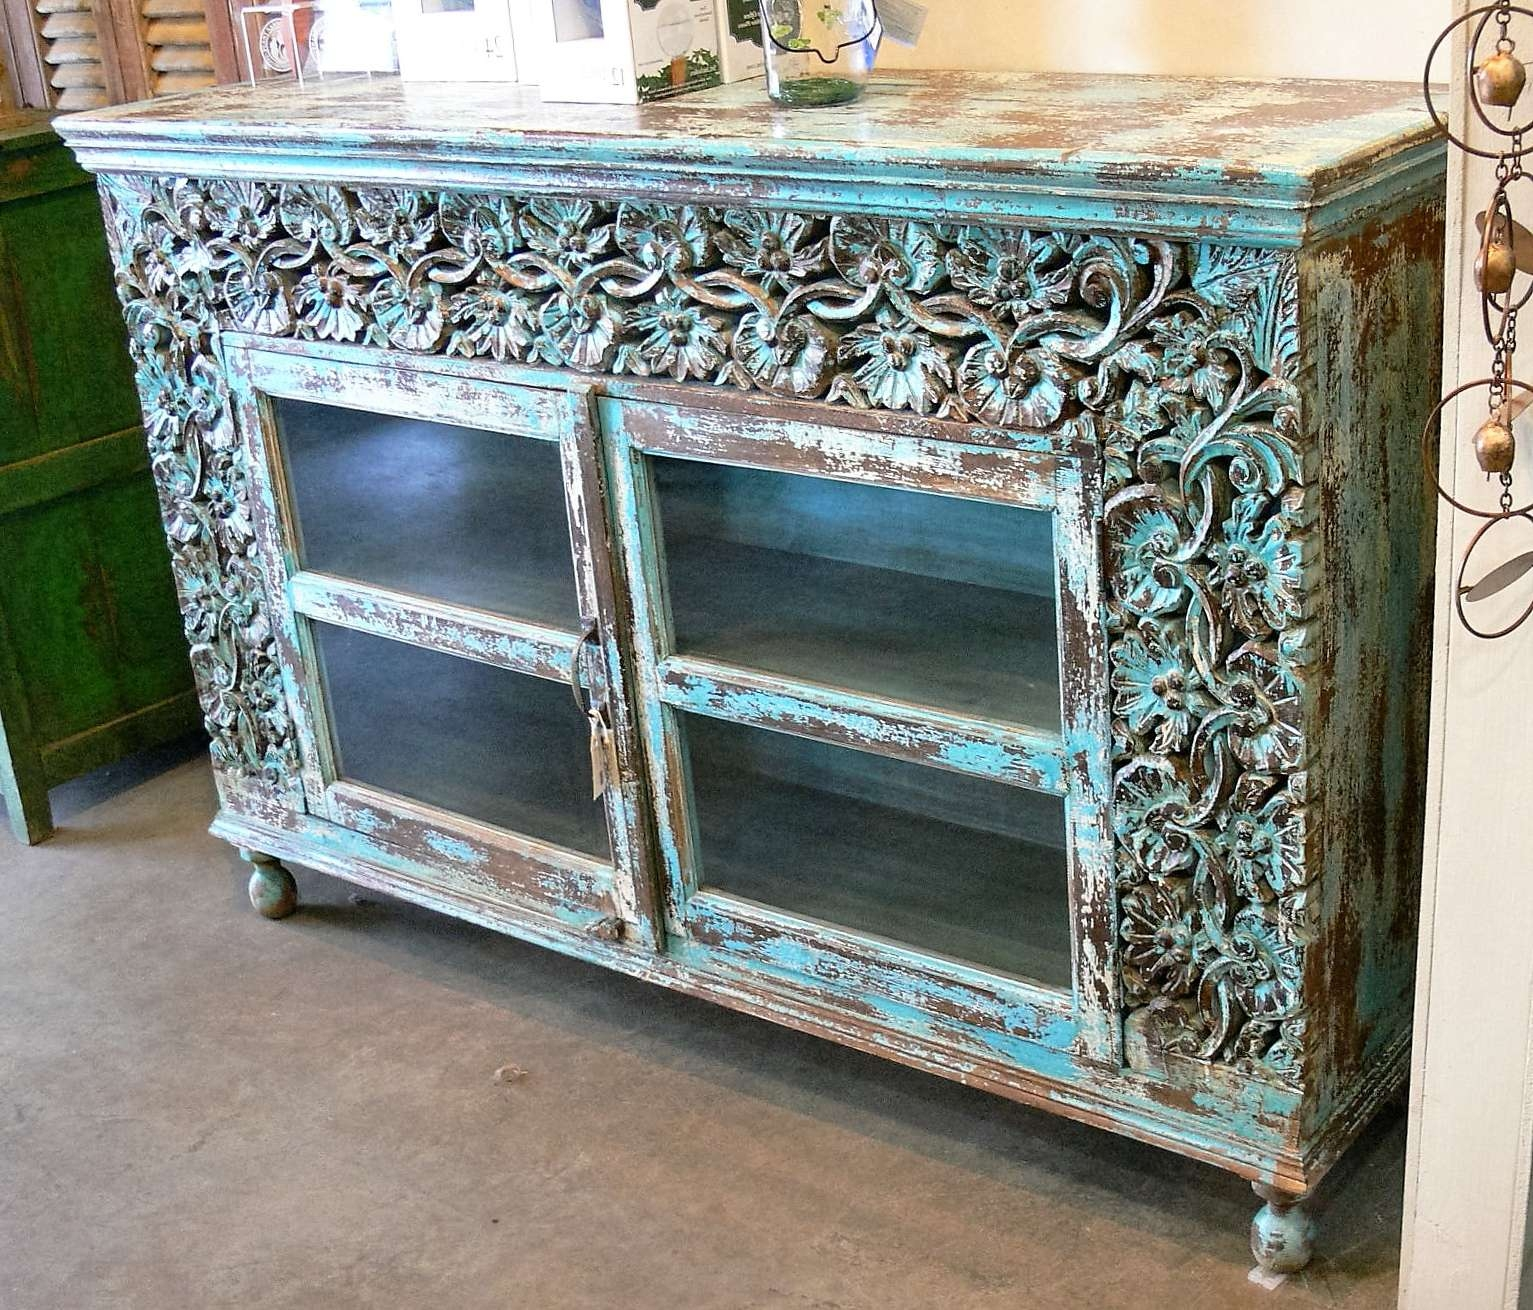 Sideboards & Buffets » Market Imports – Home, Patio, Antiques In Jacobean Sideboards Buffets (View 6 of 20)